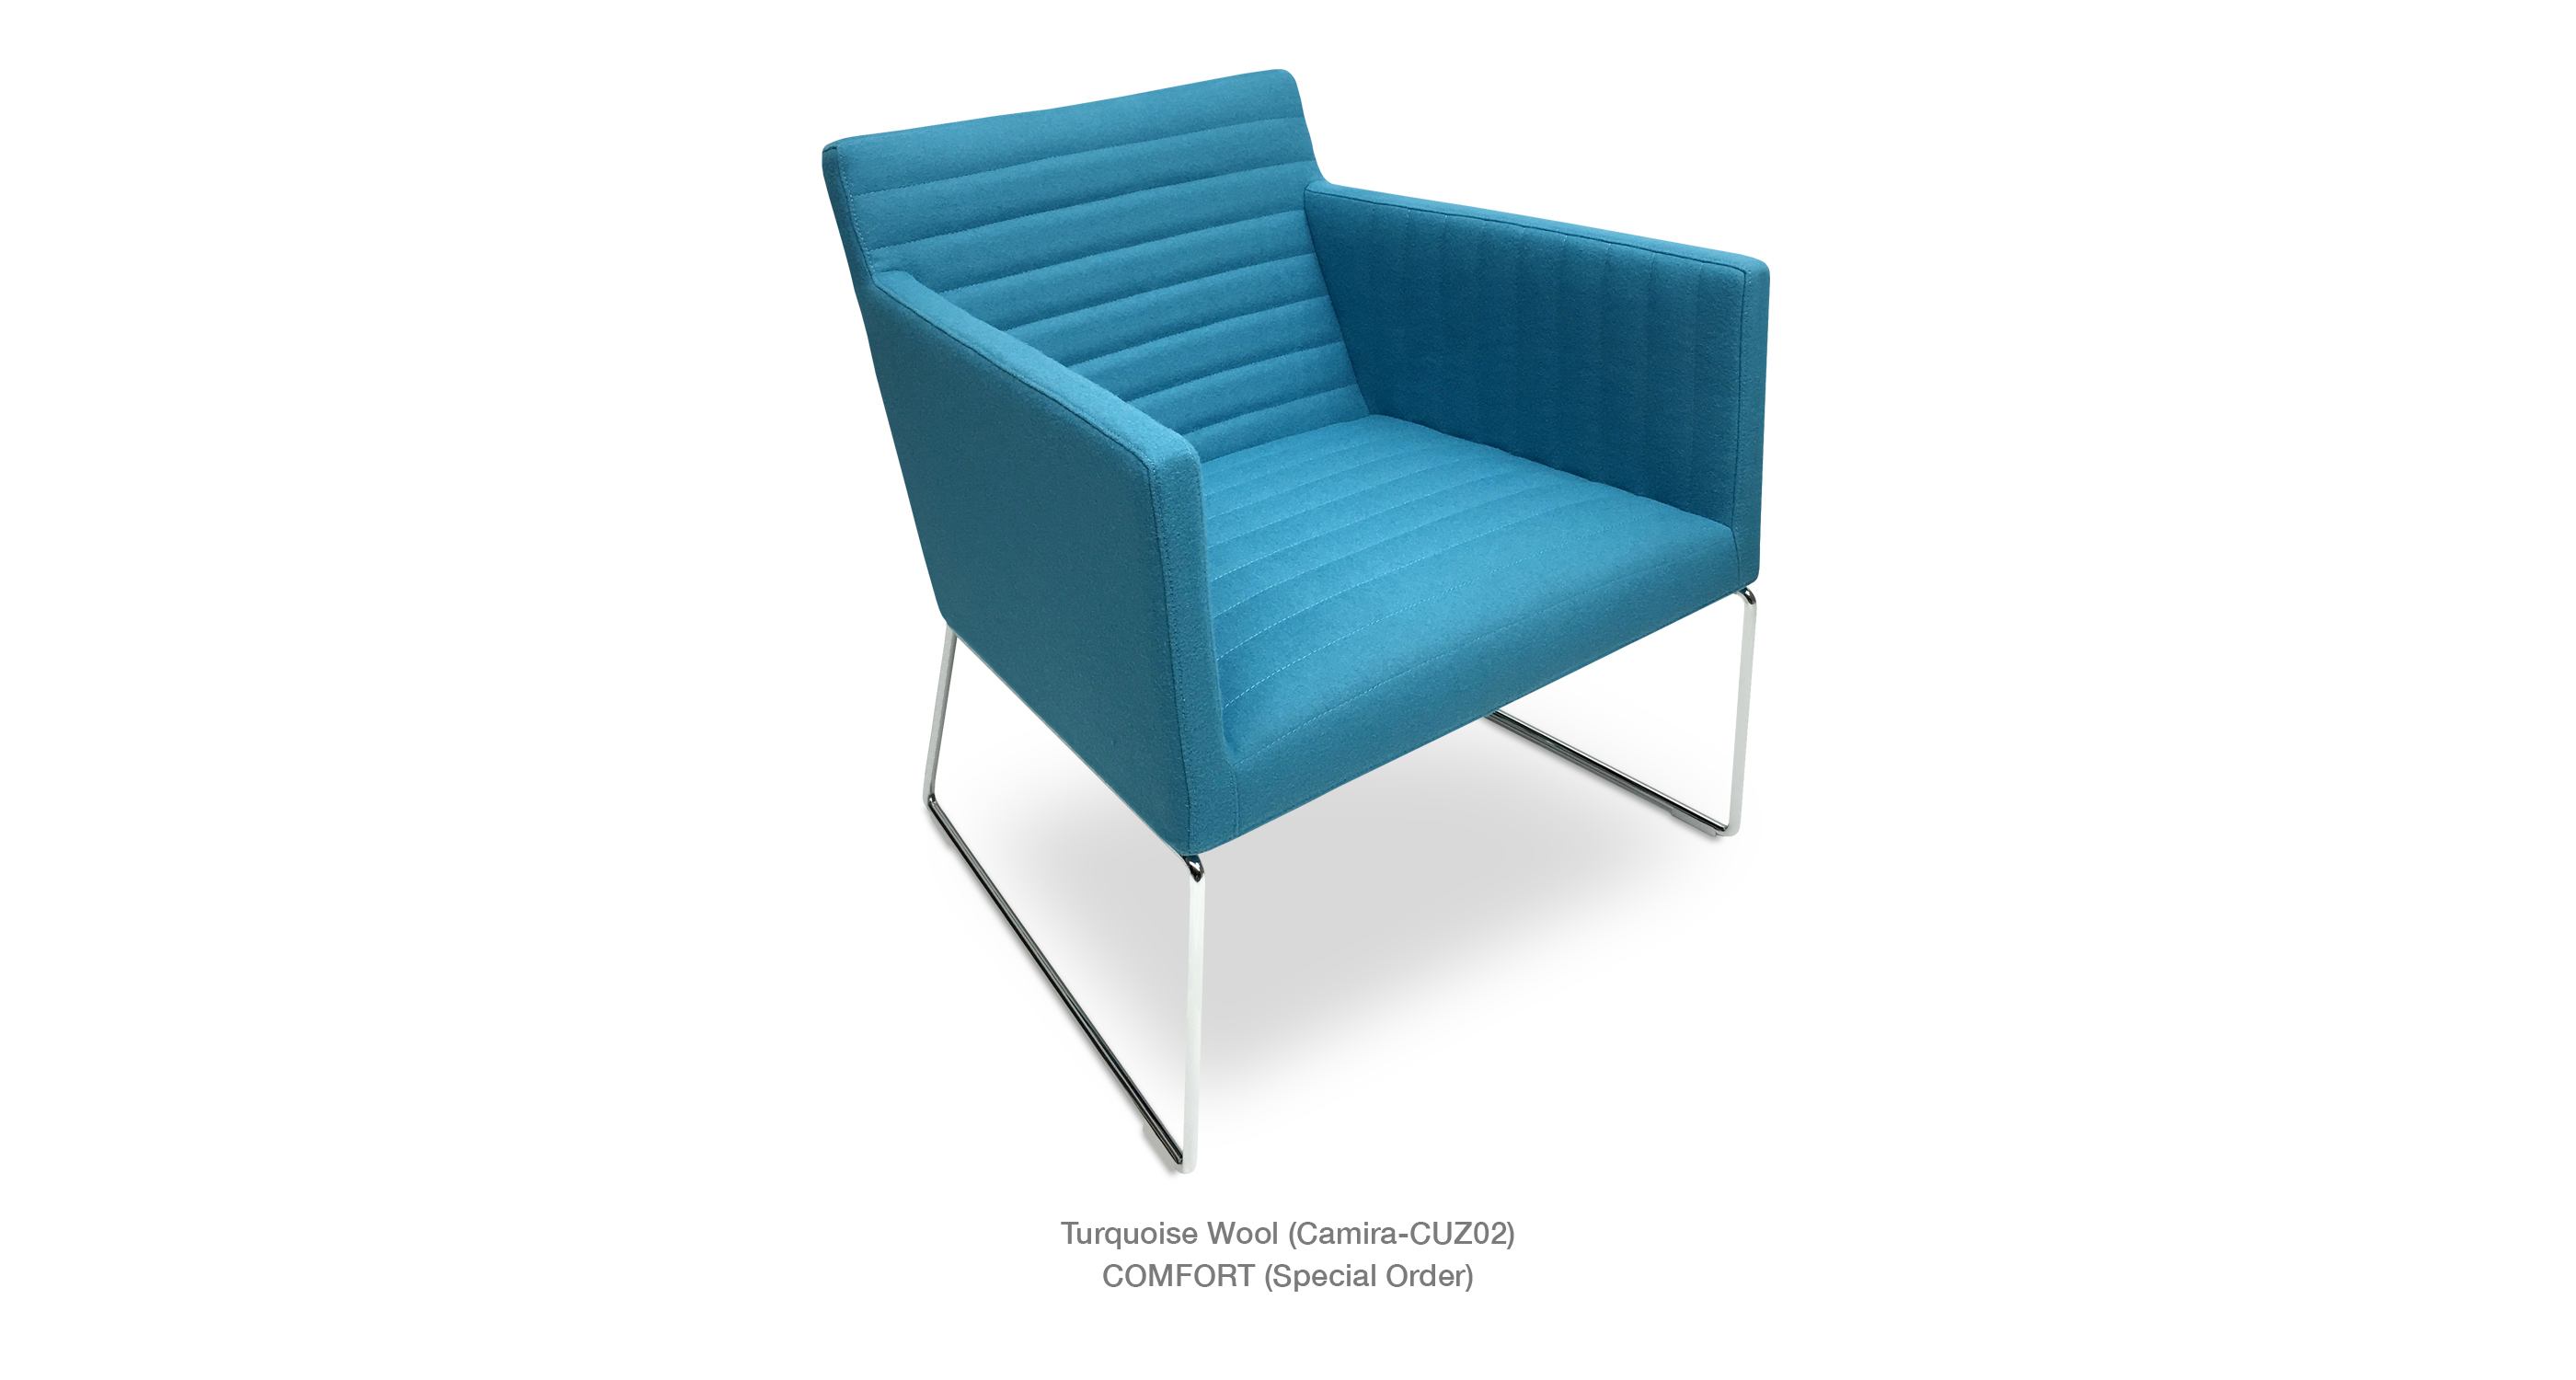 Harput Wire Lounge Turquoise Wool